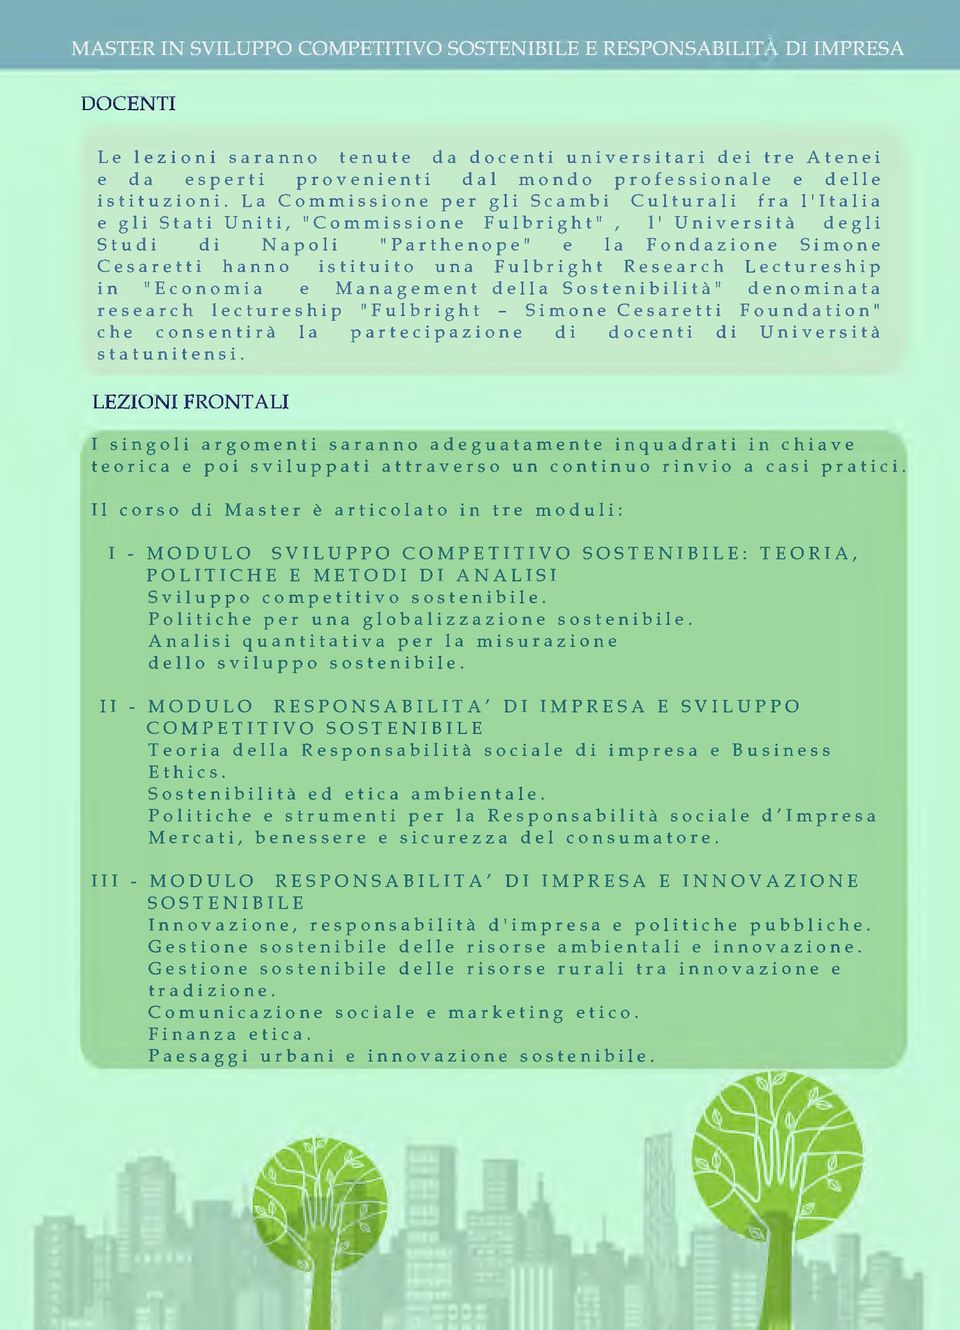 "Fulbright Research Lectureship in ""Economia e Management della Sostenibilità"" denominata research lectureship ""Fulbright Simone Cesaretti Foundation"" che consentirà la partecipazione di docenti di"